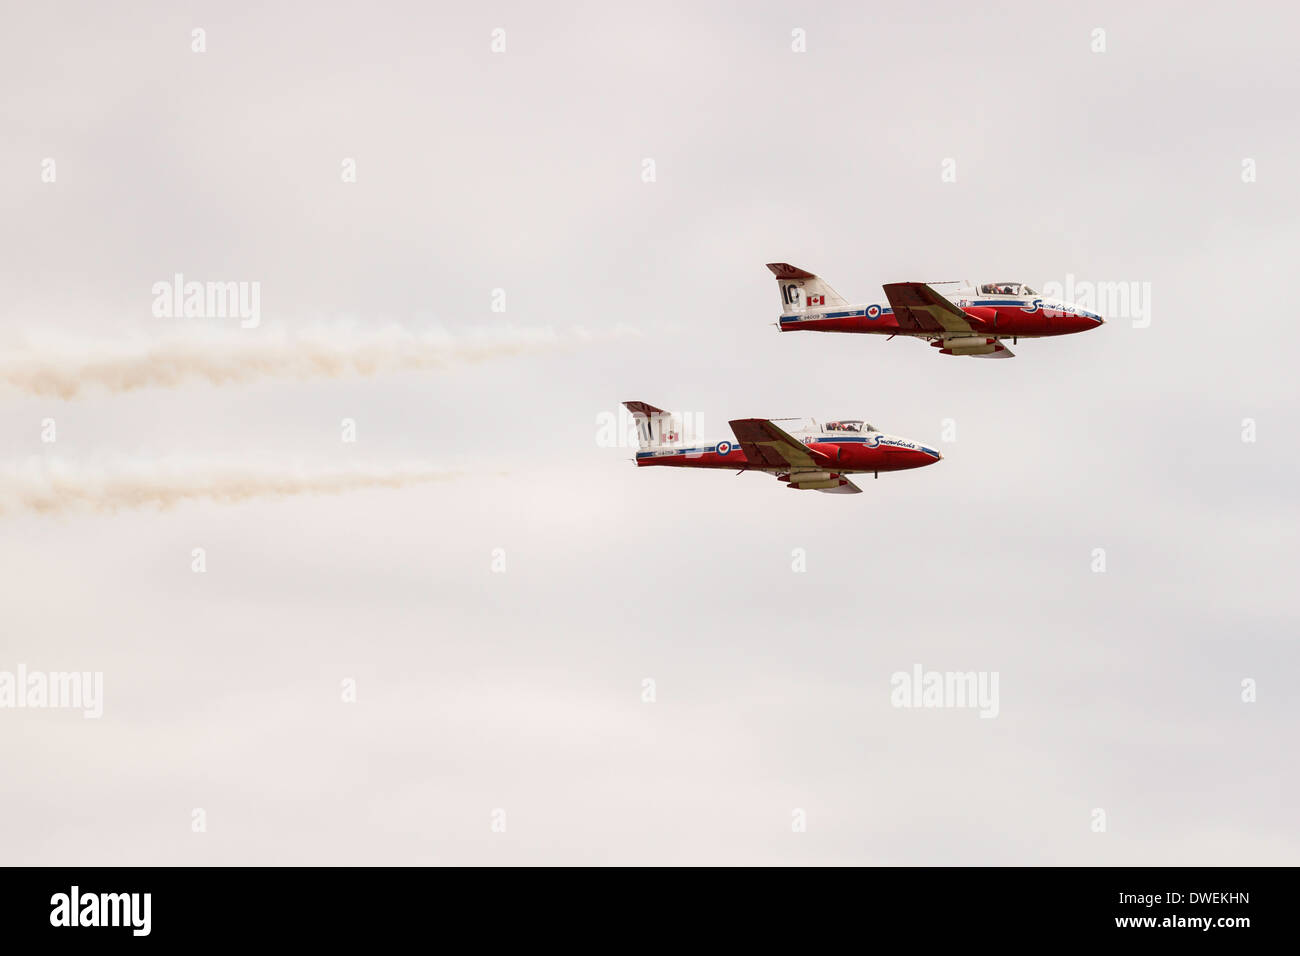 Two Canadian Snowbird aircraft flying in formation. Stock Photo